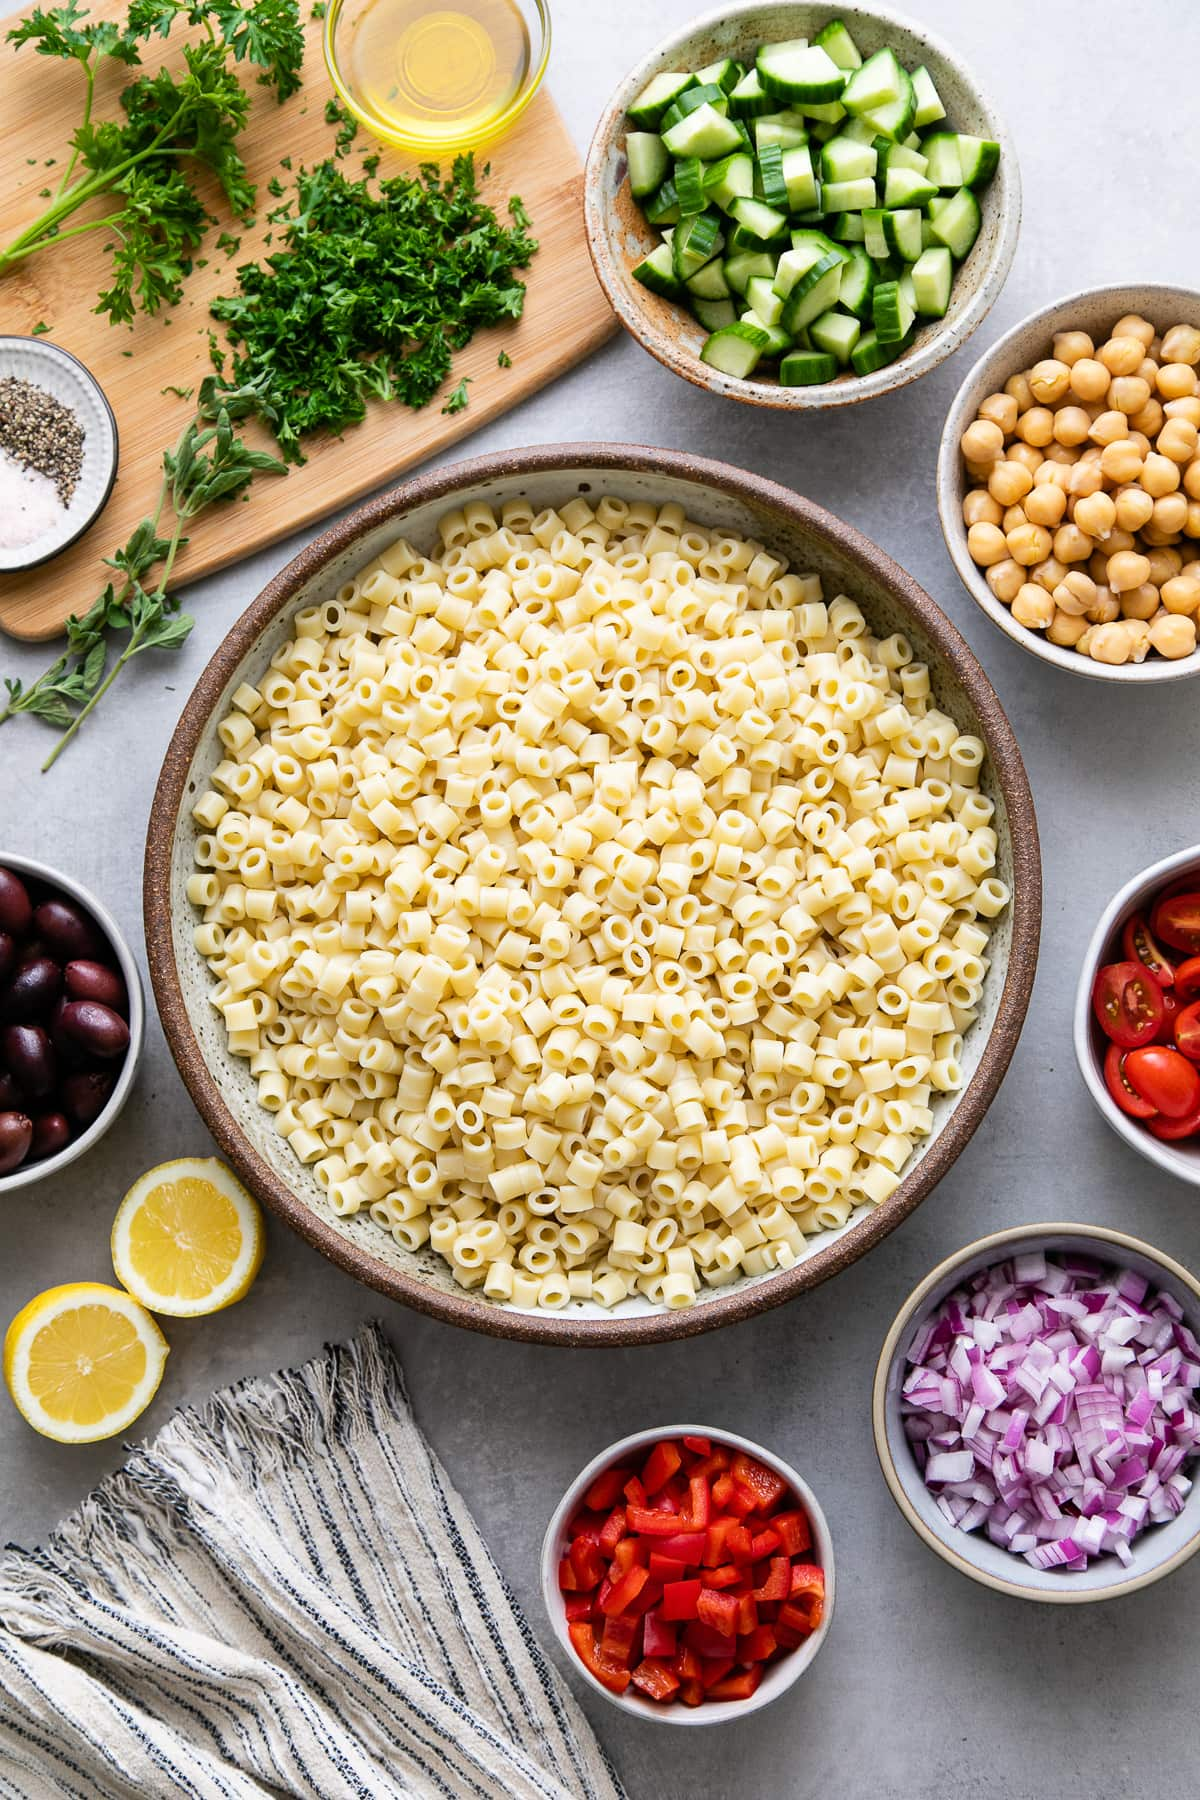 top down view of ingredients for Greek pasta salad prepped and ready to be combined.